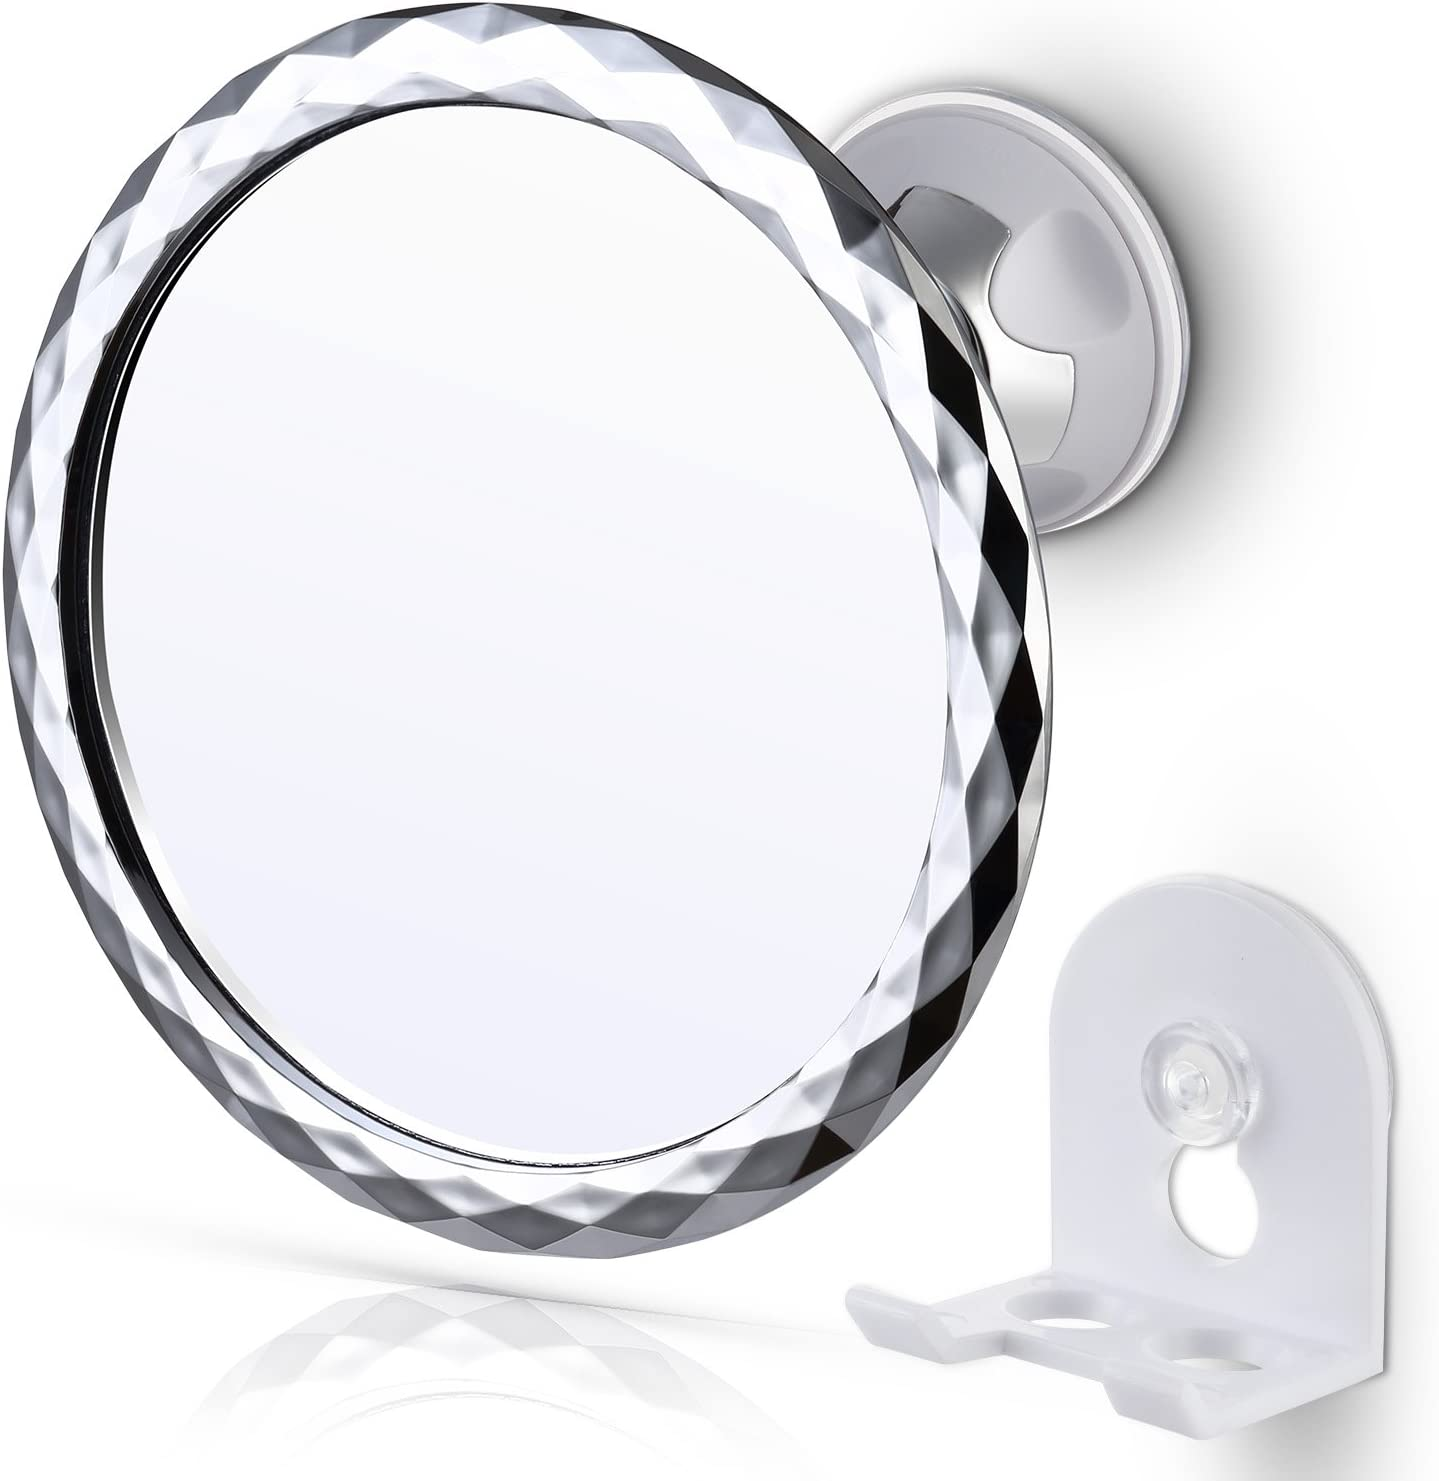 360°Rotate Fog Free Fogless Bathroom Shower Mirror with Suction Cup Razor Holder